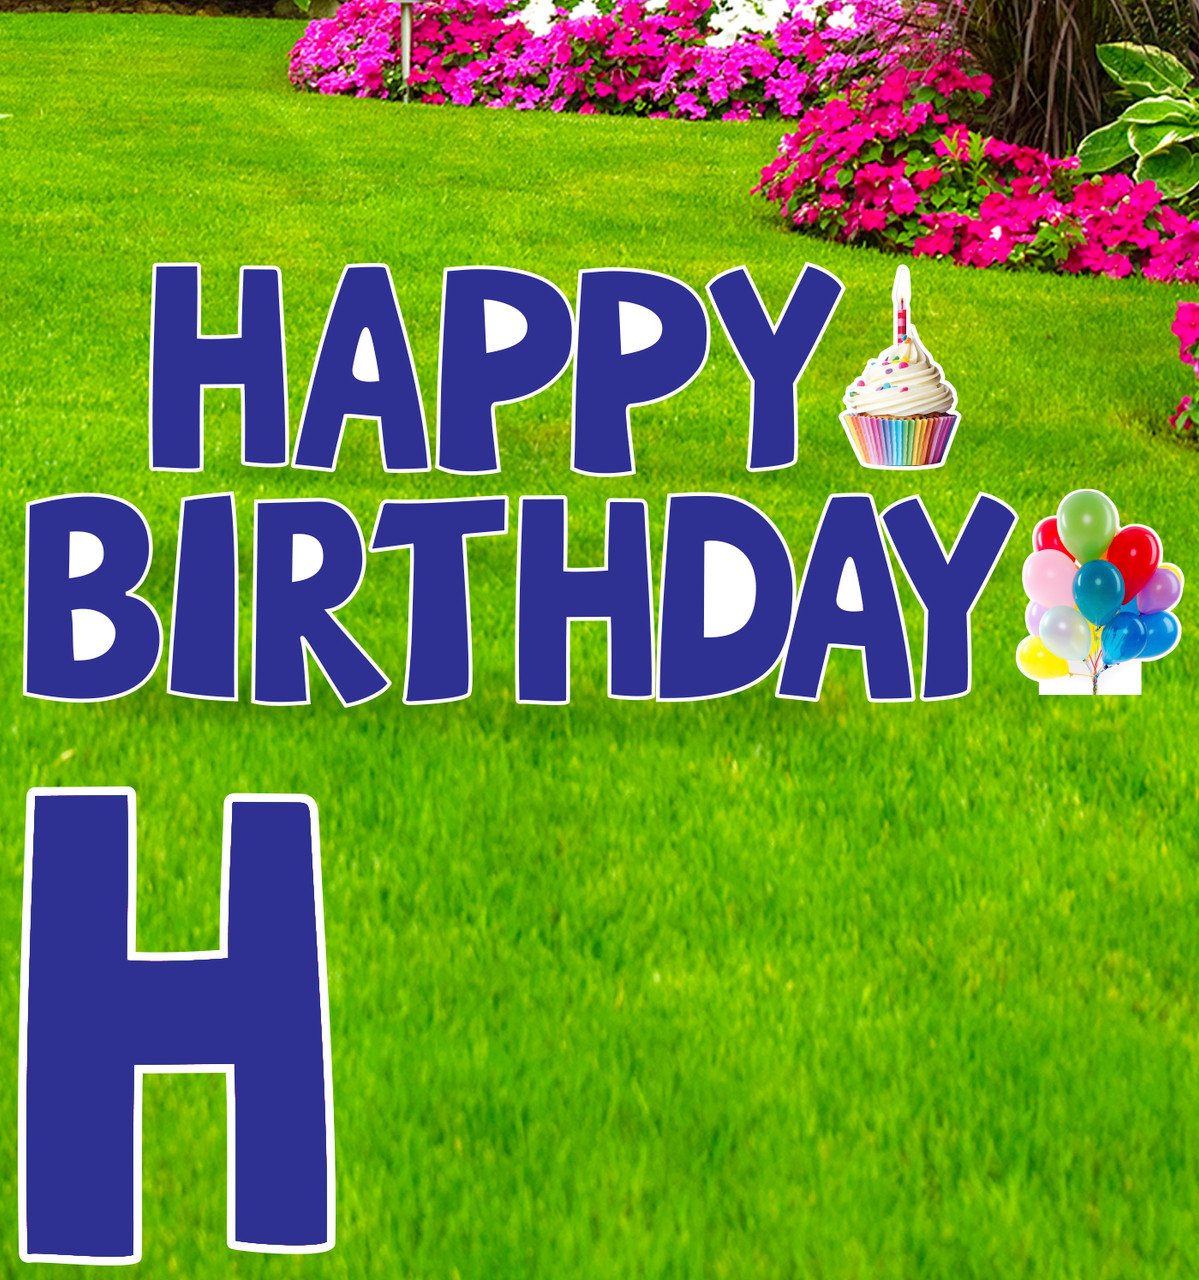 Coroplast blue Happy Birthday yard signs with background.